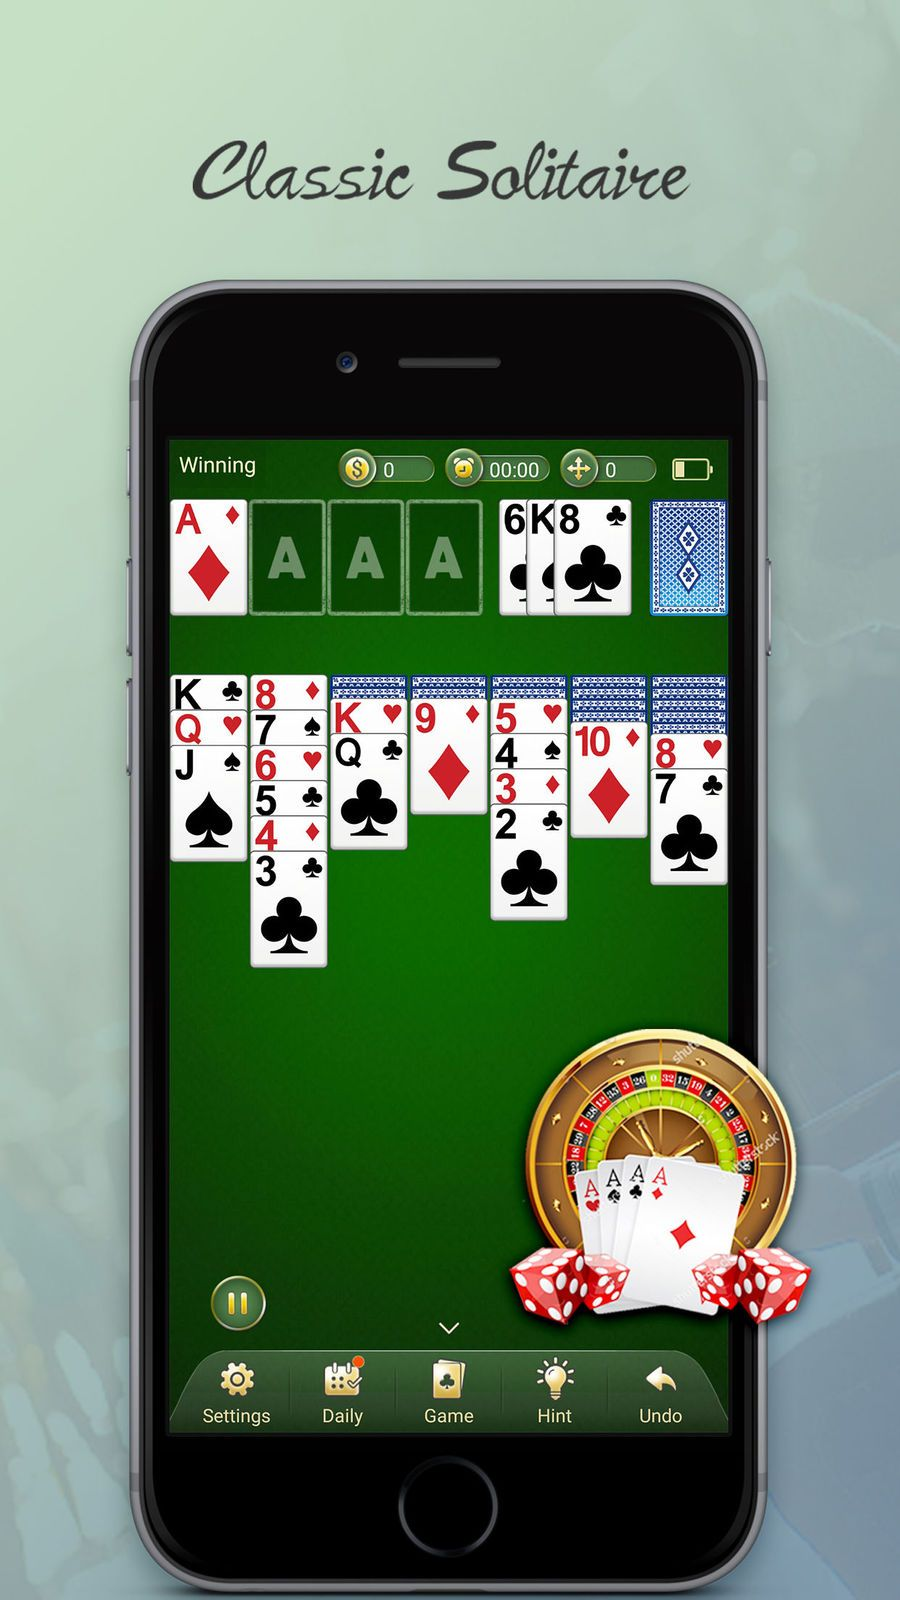 Solitaire - Free Classic Card Games App #Fotoable#App#Casino